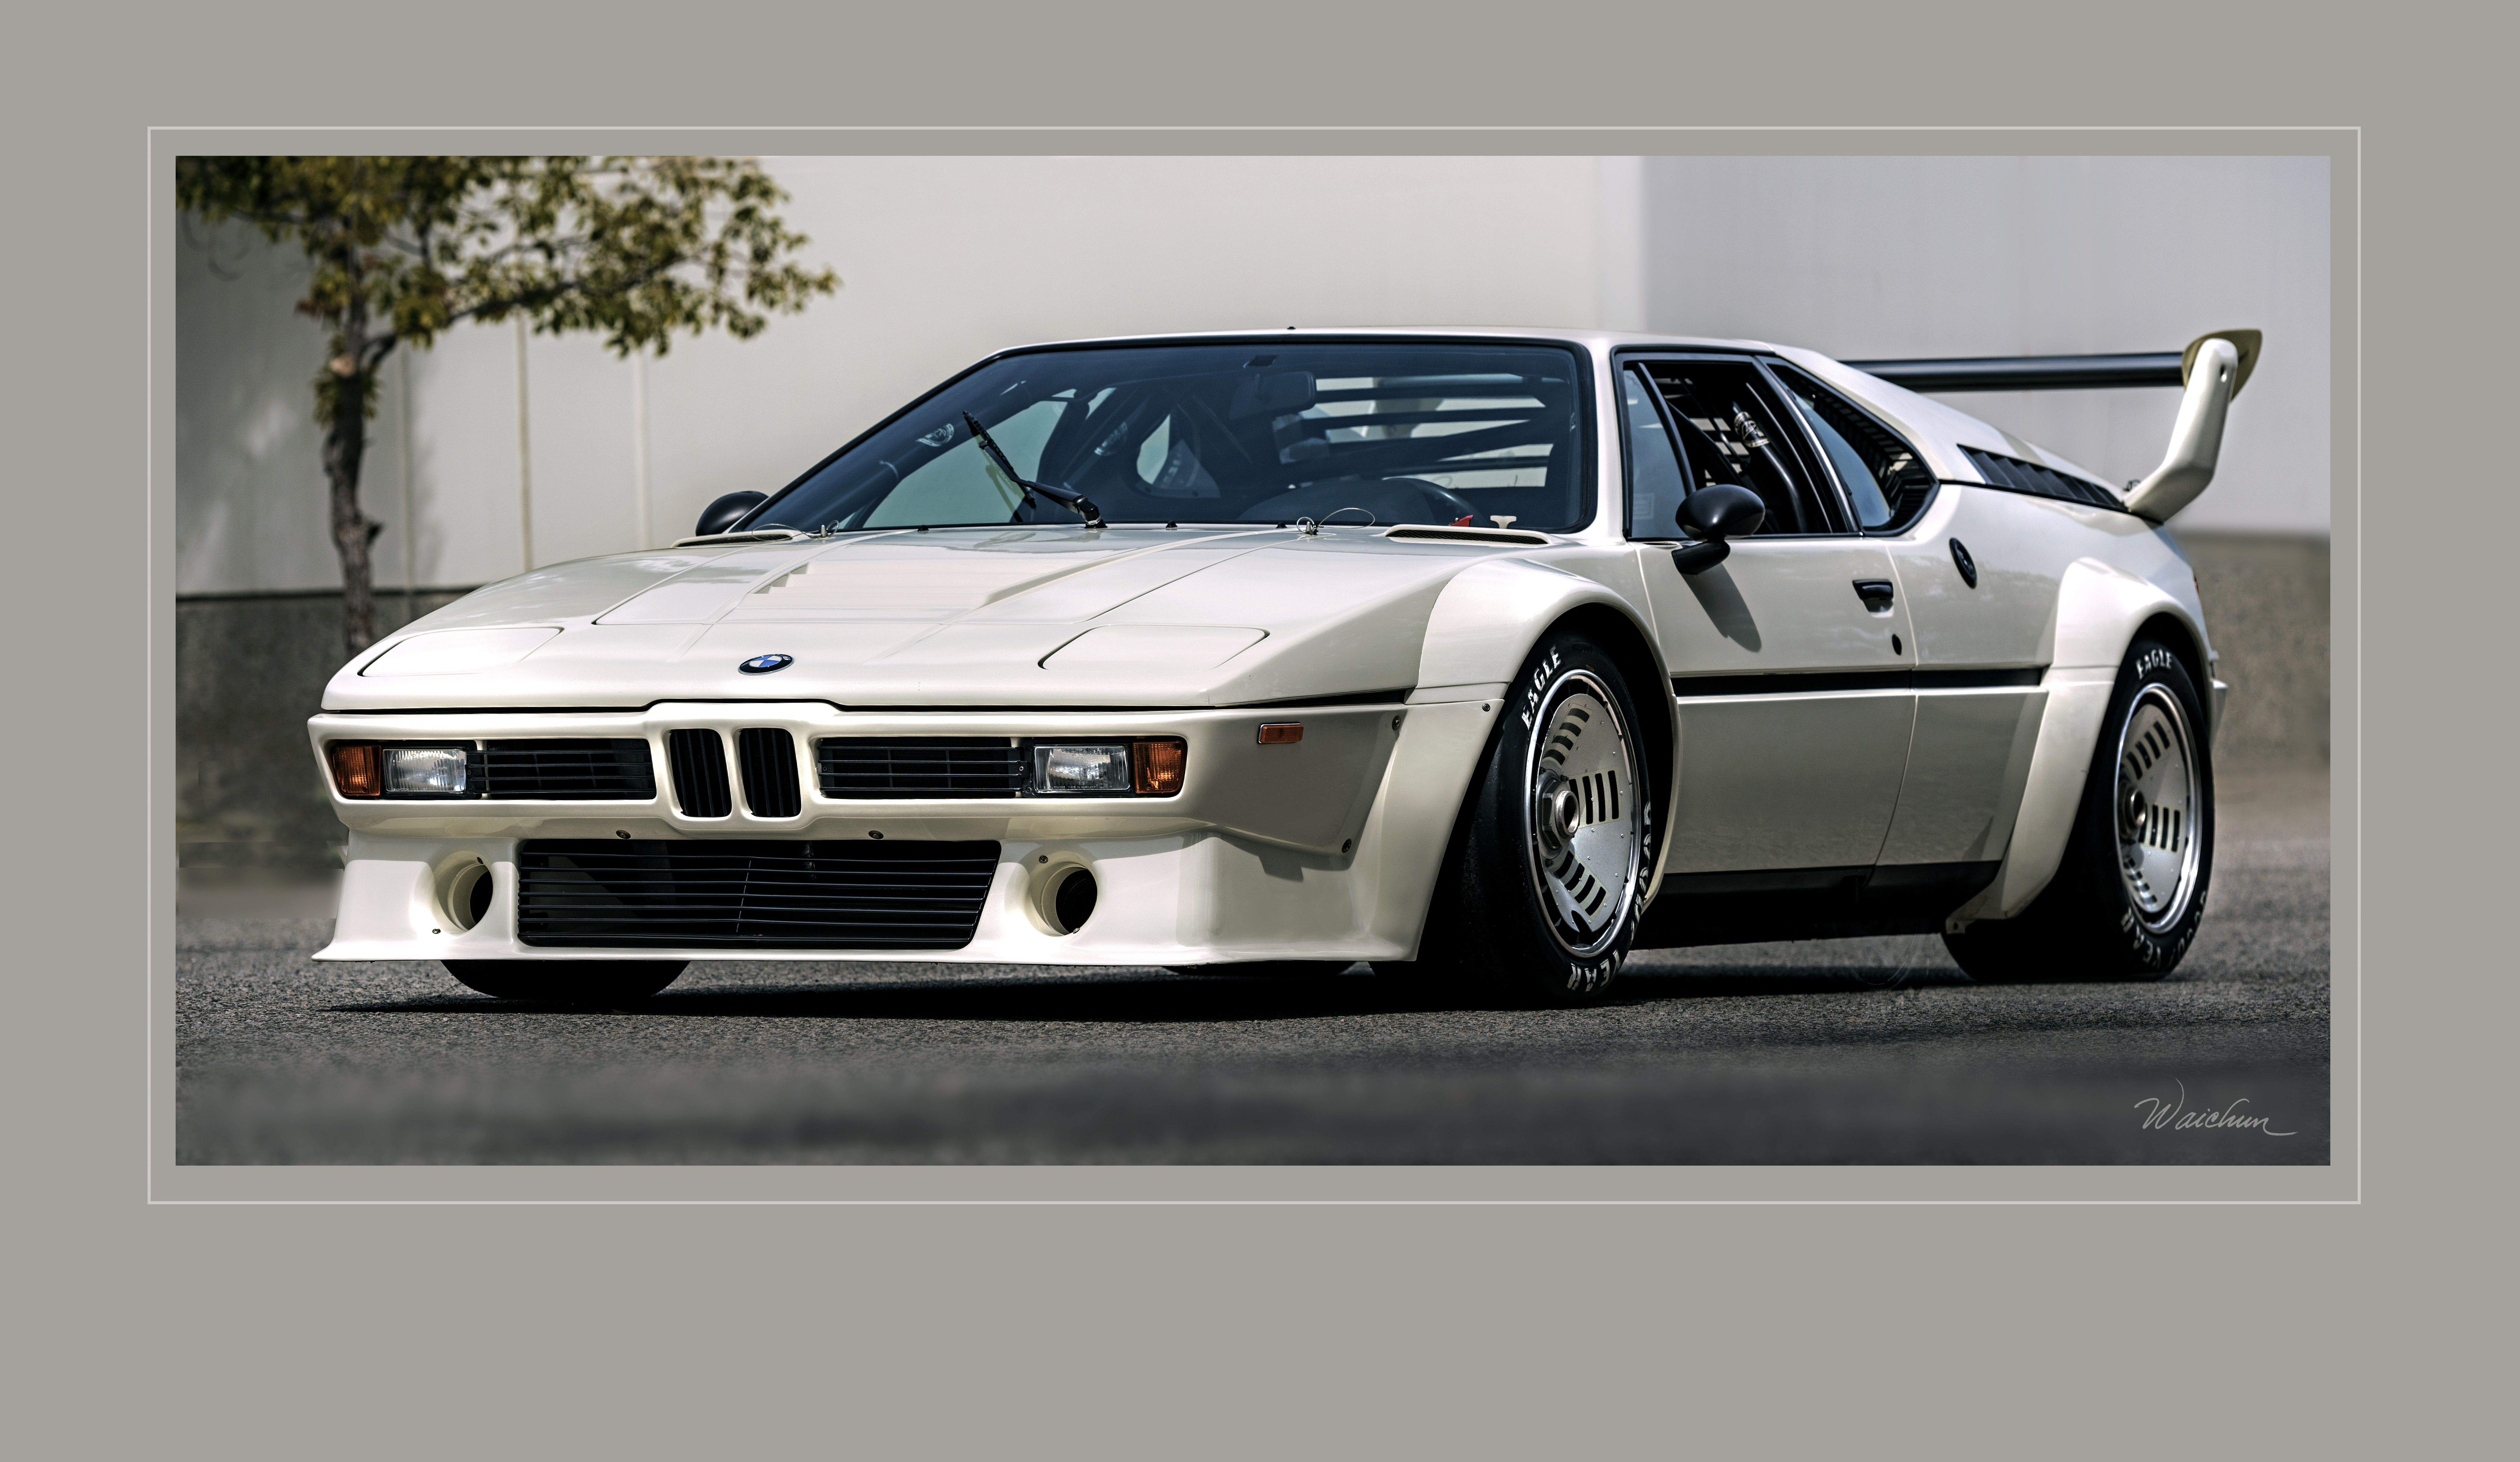 Bmw M1 Procar The World S Only New Procar Madison Zamperini Collection Bmw M1 Bmw Classic Cars